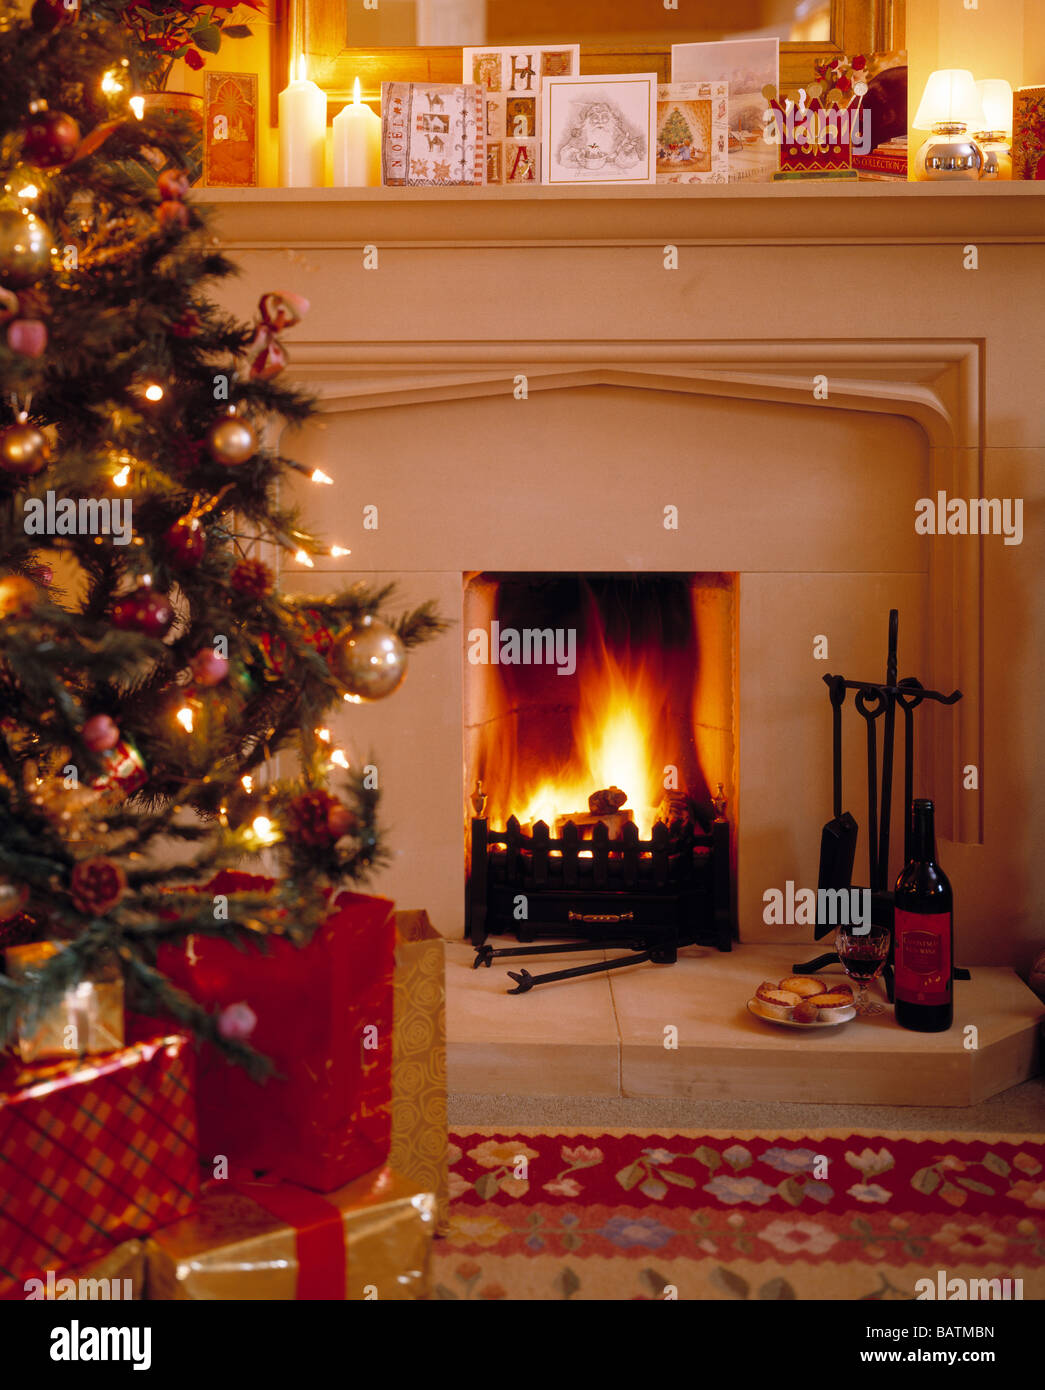 a warm and cosy christmas scene by the glowing fire stock photo